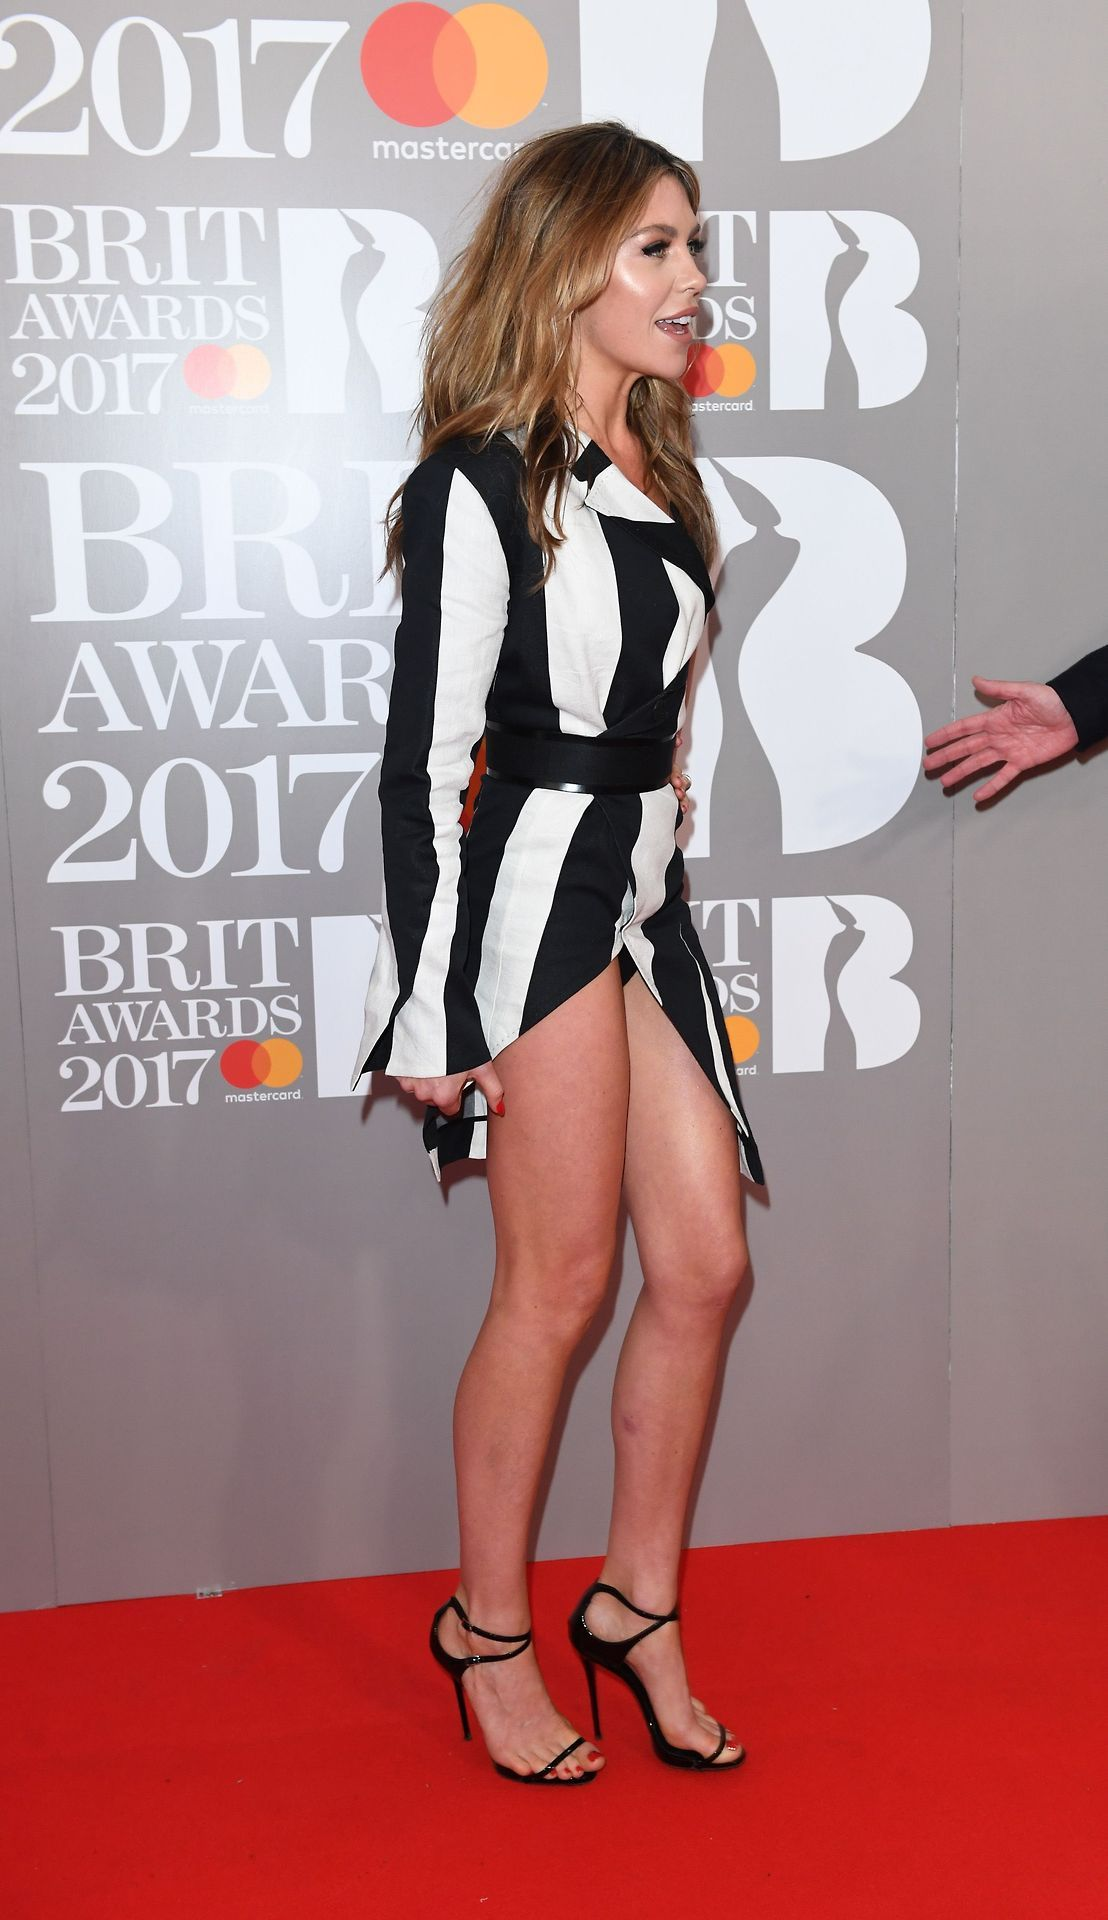 Abbey clancy panty flash and great legs